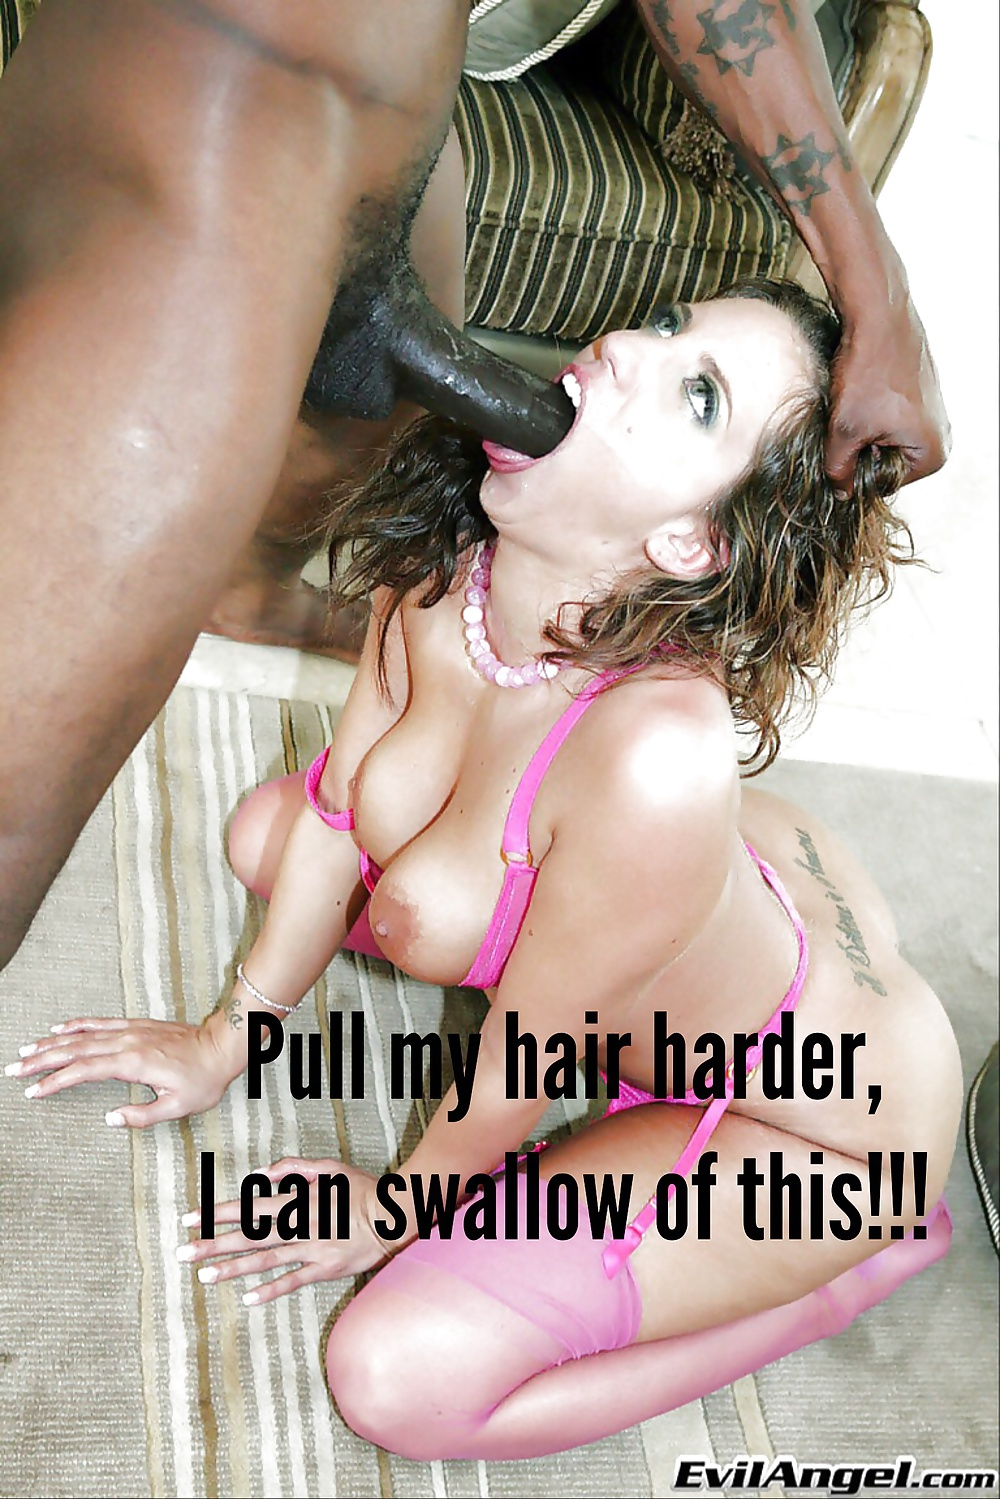 Interracial black cock sluts captions